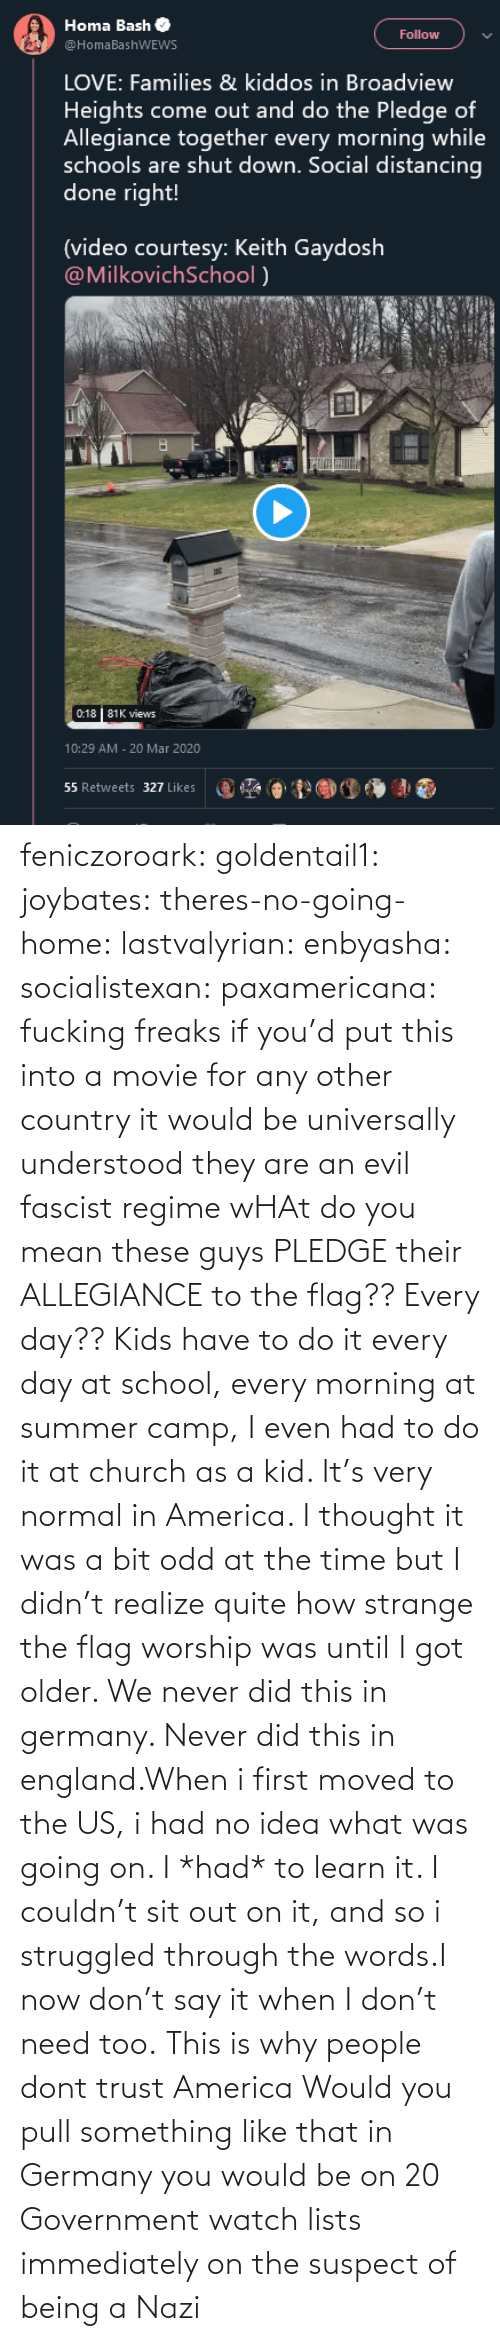 camp: feniczoroark:  goldentail1:  joybates:  theres-no-going-home:  lastvalyrian:  enbyasha:  socialistexan:  paxamericana: fucking freaks       if you'd put this into a movie for any other country it would be universally understood they are an evil fascist regime    wHAt do you mean these guys PLEDGE their ALLEGIANCE to the flag?? Every day??   Kids have to do it every day at school, every morning at summer camp, I even had to do it at church as a kid. It's very normal in America. I thought it was a bit odd at the time but I didn't realize quite how strange the flag worship was until I got older.    We never did this in germany. Never did this in england.When i first moved to the US, i had no idea what was going on. I *had* to learn it. I couldn't sit out on it, and so i struggled through the words.I now don't say it when I don't need too.   This is why people dont trust America    Would you pull something like that in Germany you would be on 20 Government watch lists immediately on the suspect of being a Nazi